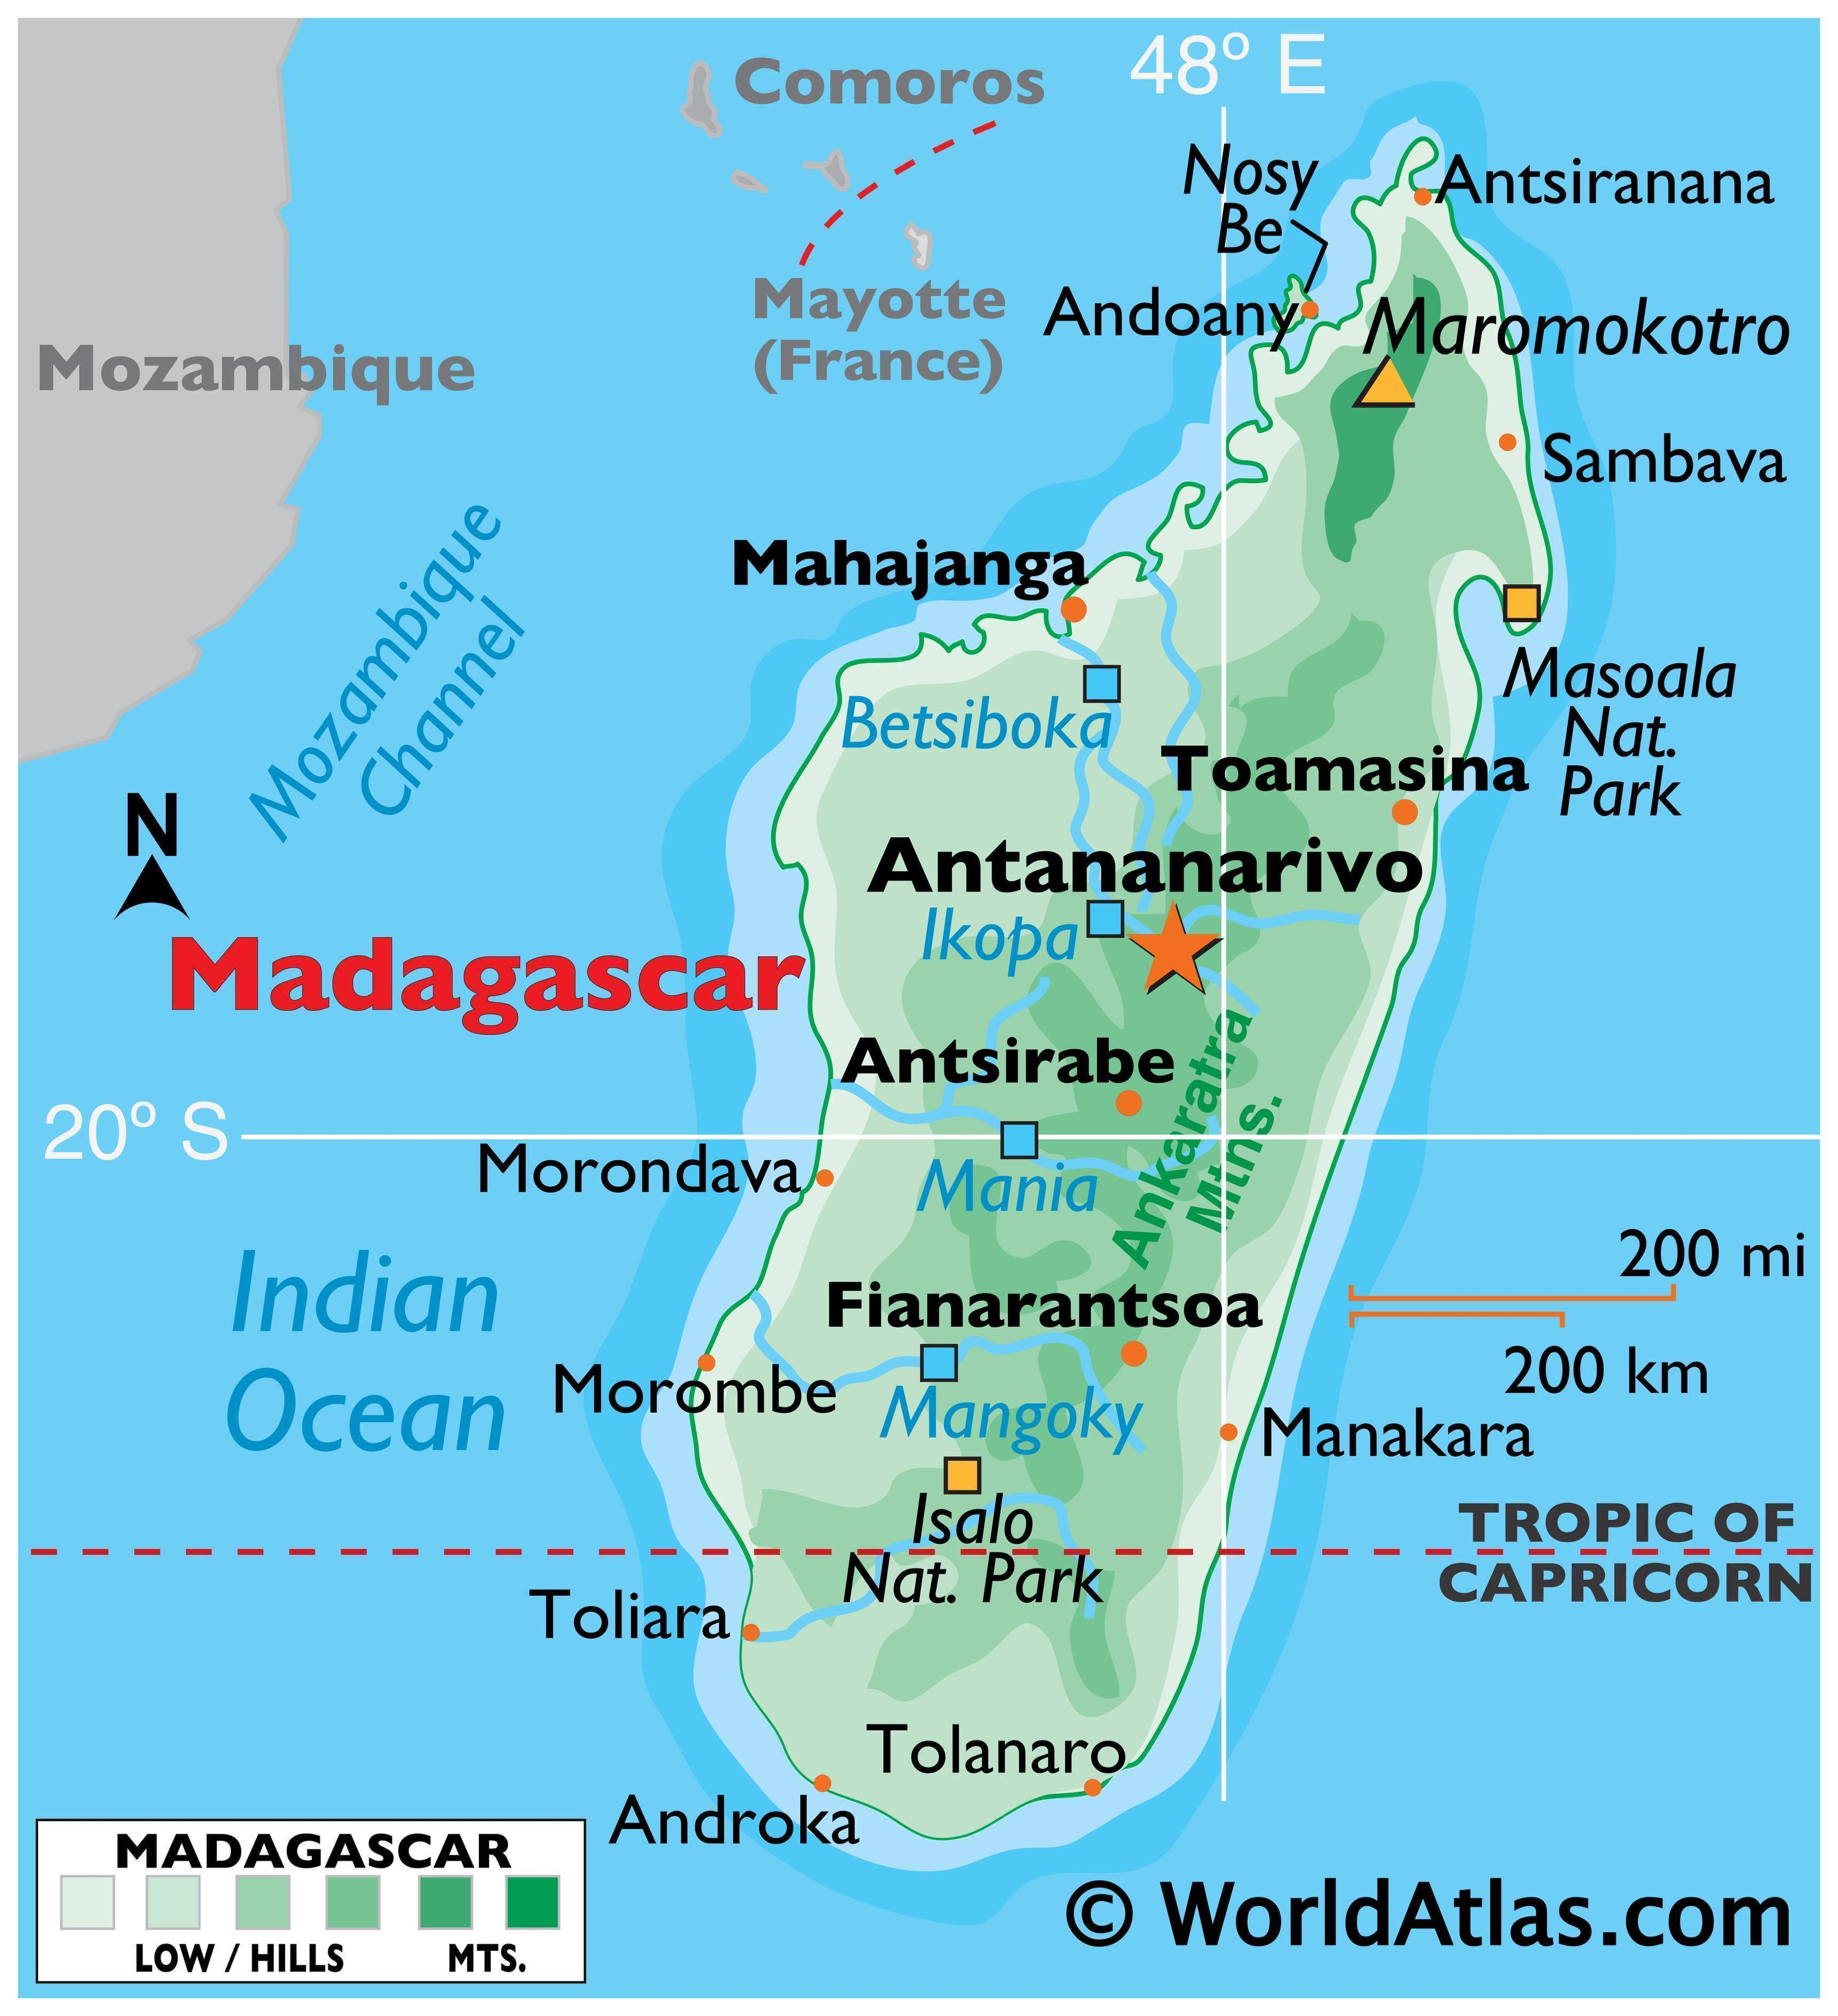 Physical Map of Madagascar displaying state boundaries, relief, highest point, important cities, and major rivers.